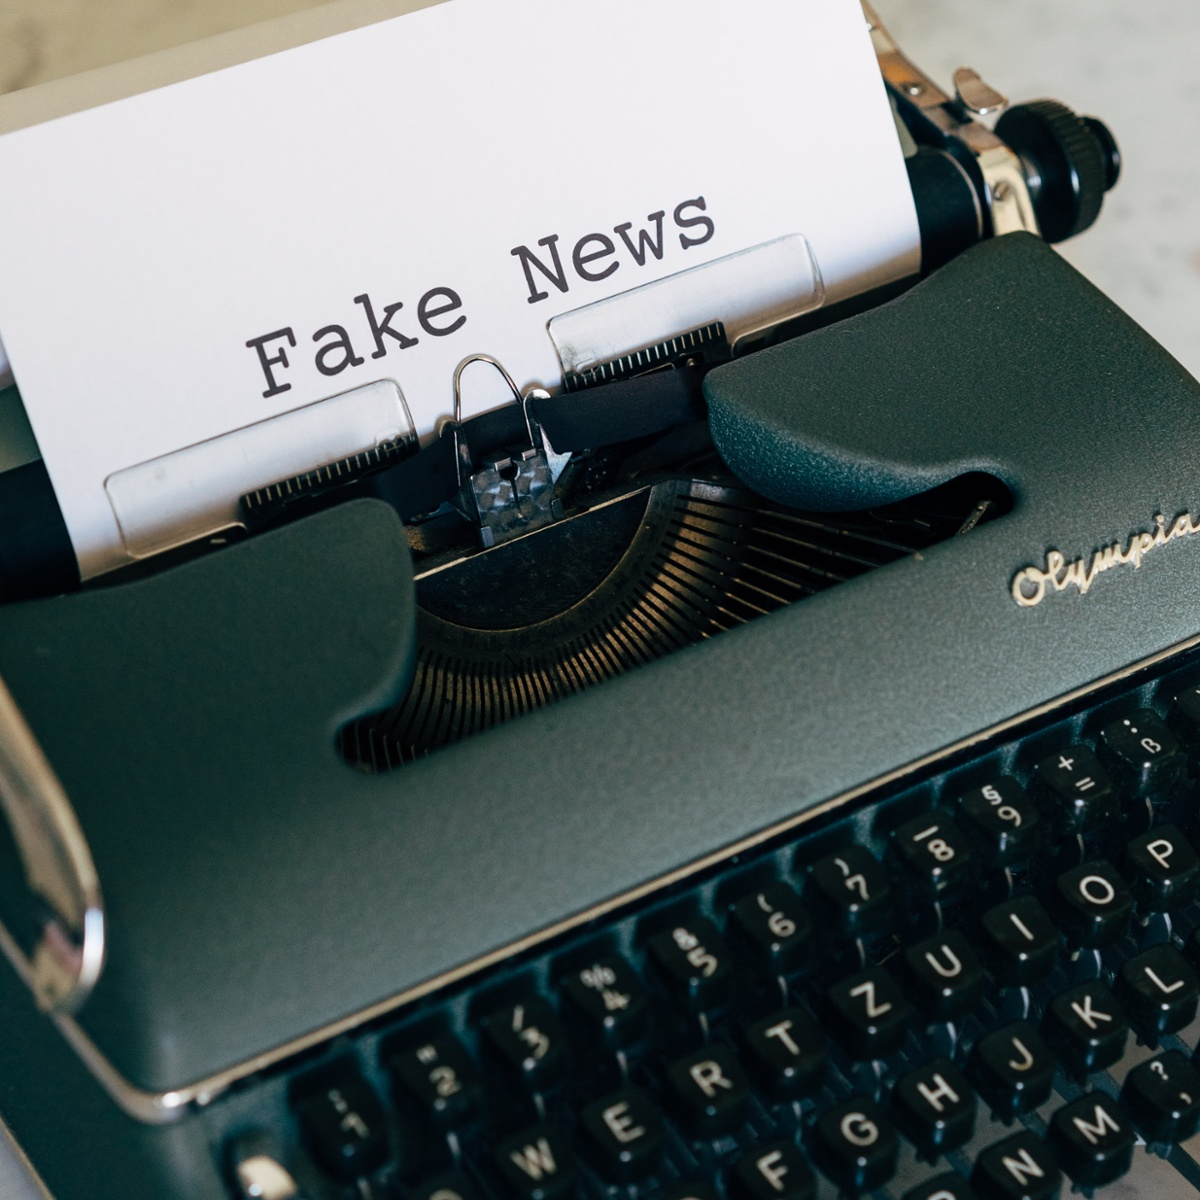 Why lead source is fake news